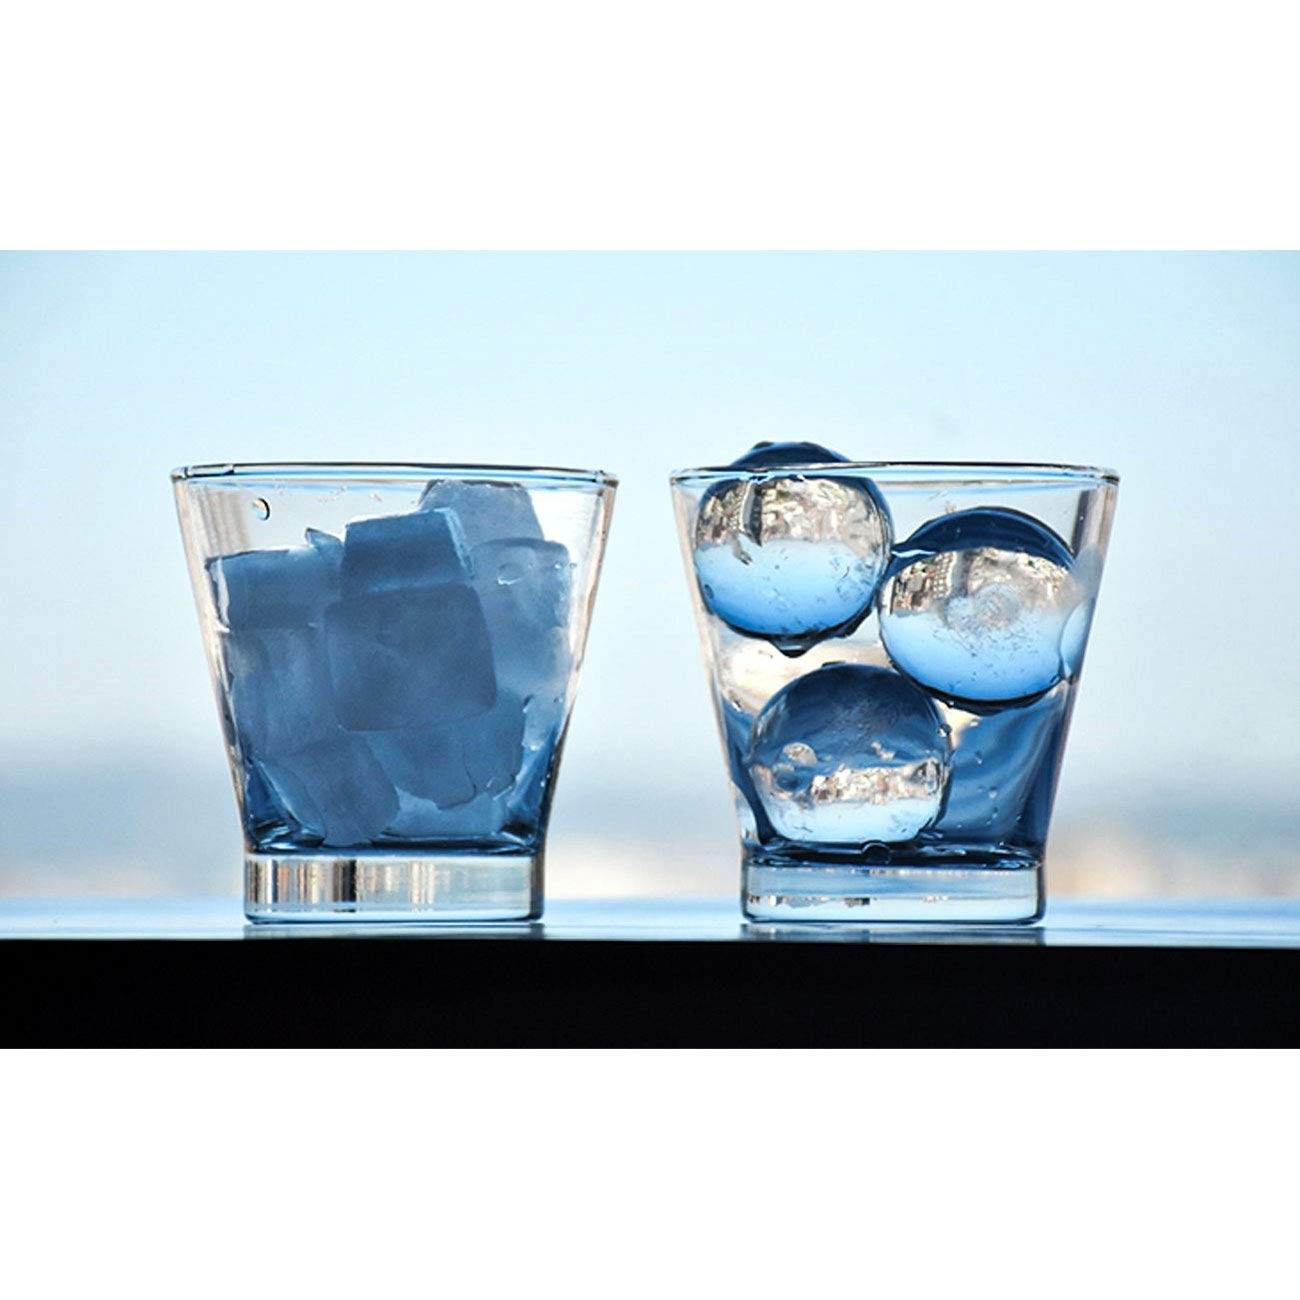 Frigidaire EFIC452SS 40 Lbs Extra Large Clear Maker Stainless Steel Makes Square Ice